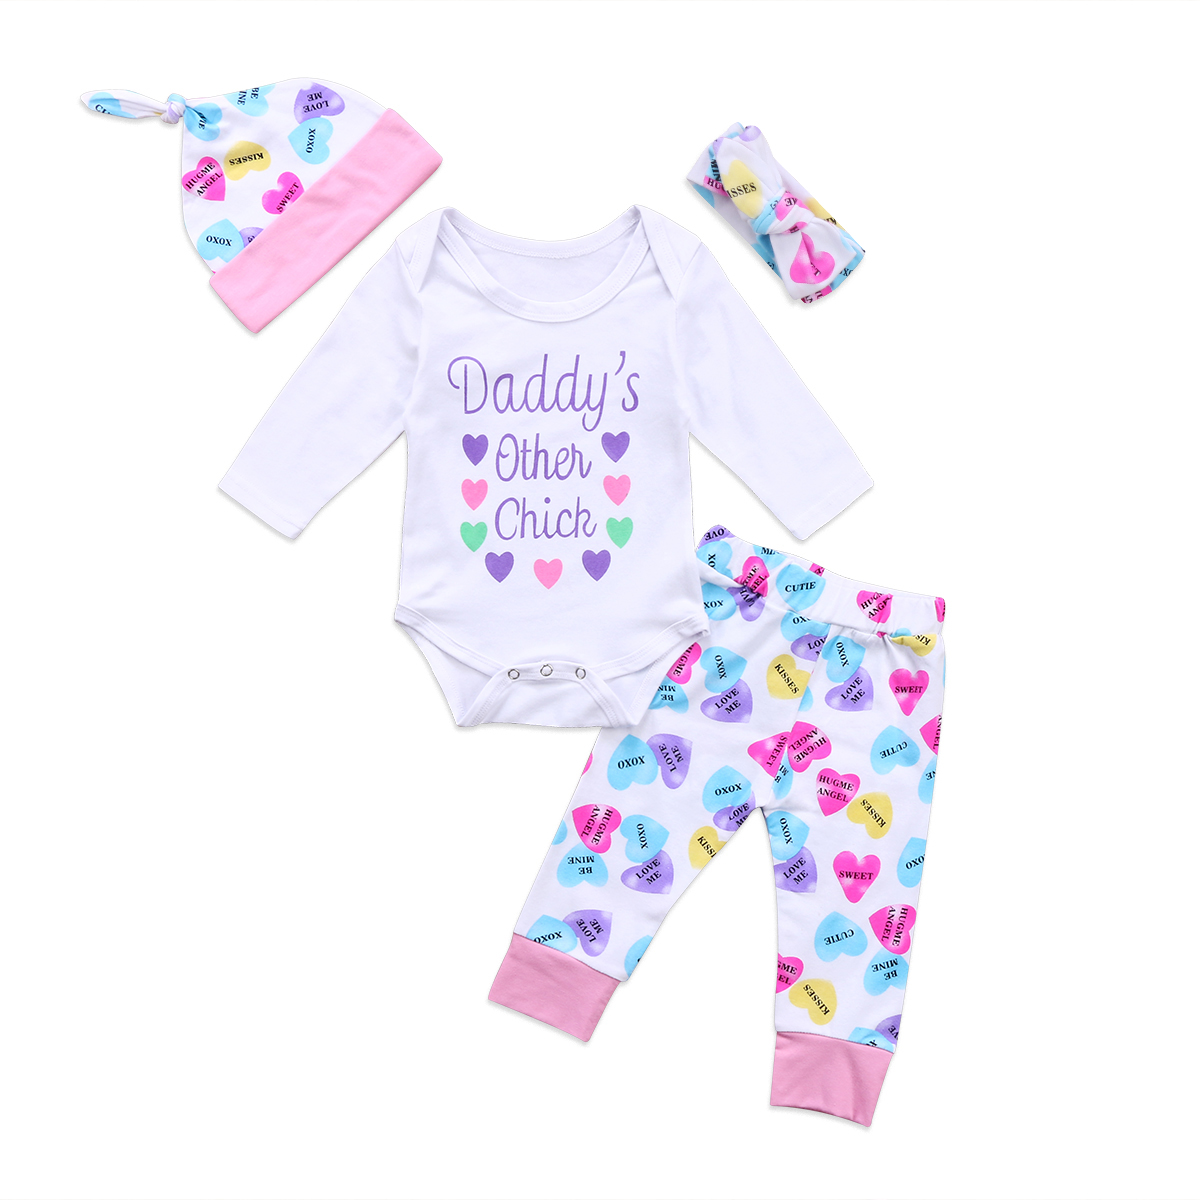 Newborn  Infant  Baby Girls Daddys other chick Romper Playsuit+Long Hear Print Pants Jumpsuit Head band Clothes Outfit 4pcs us stock floral newborn baby girls lace romper pants headband outfit set clothes infant toddler girl brief clothing set playsuit